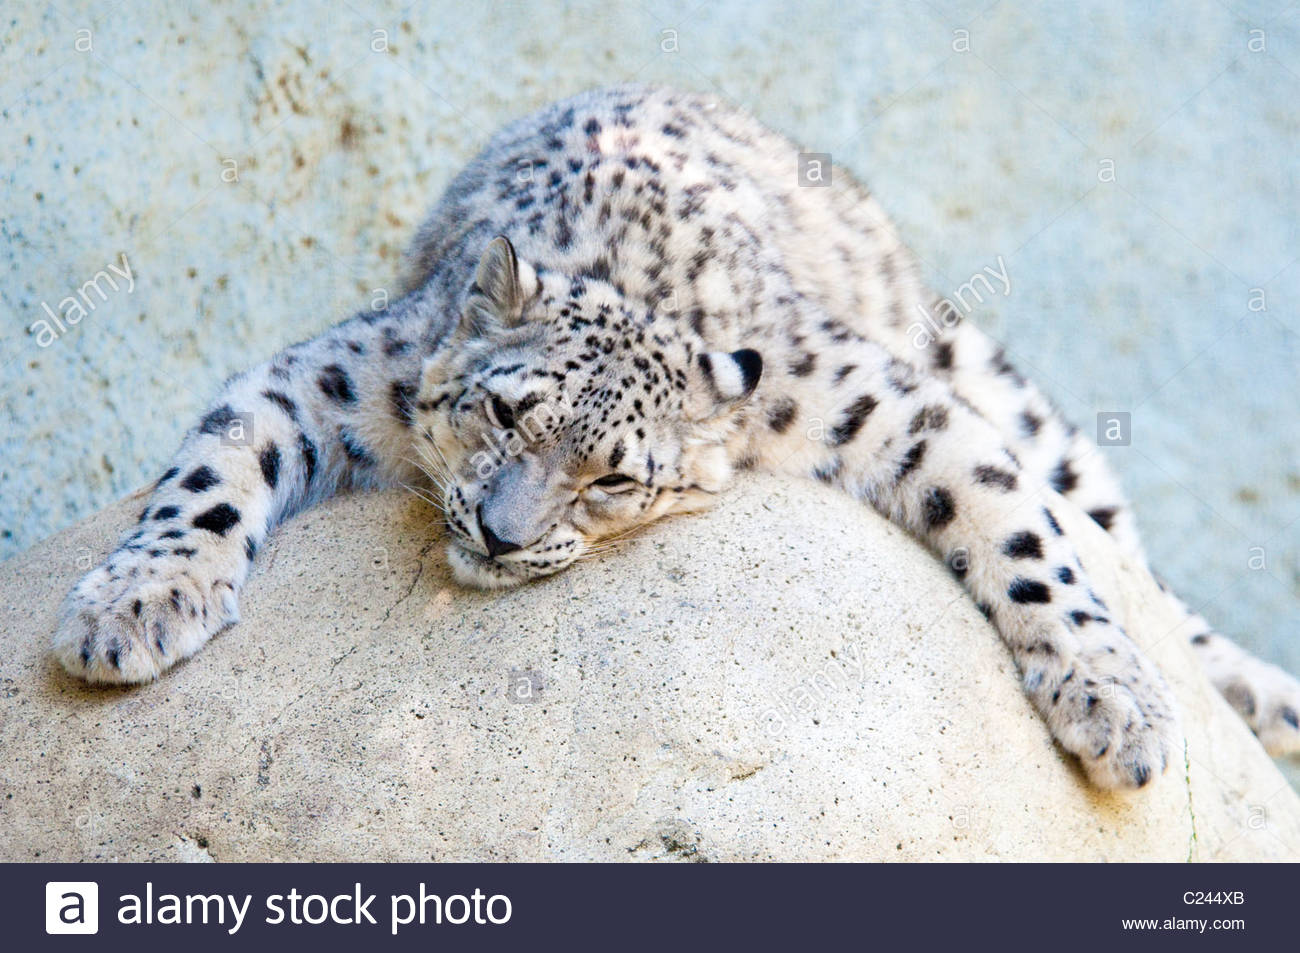 Snow Leopard, Panthera uncia, Los Angeles Zoo, California, relaxed, funny, sleeping, resting, sleepy snow leopard - Stock Image